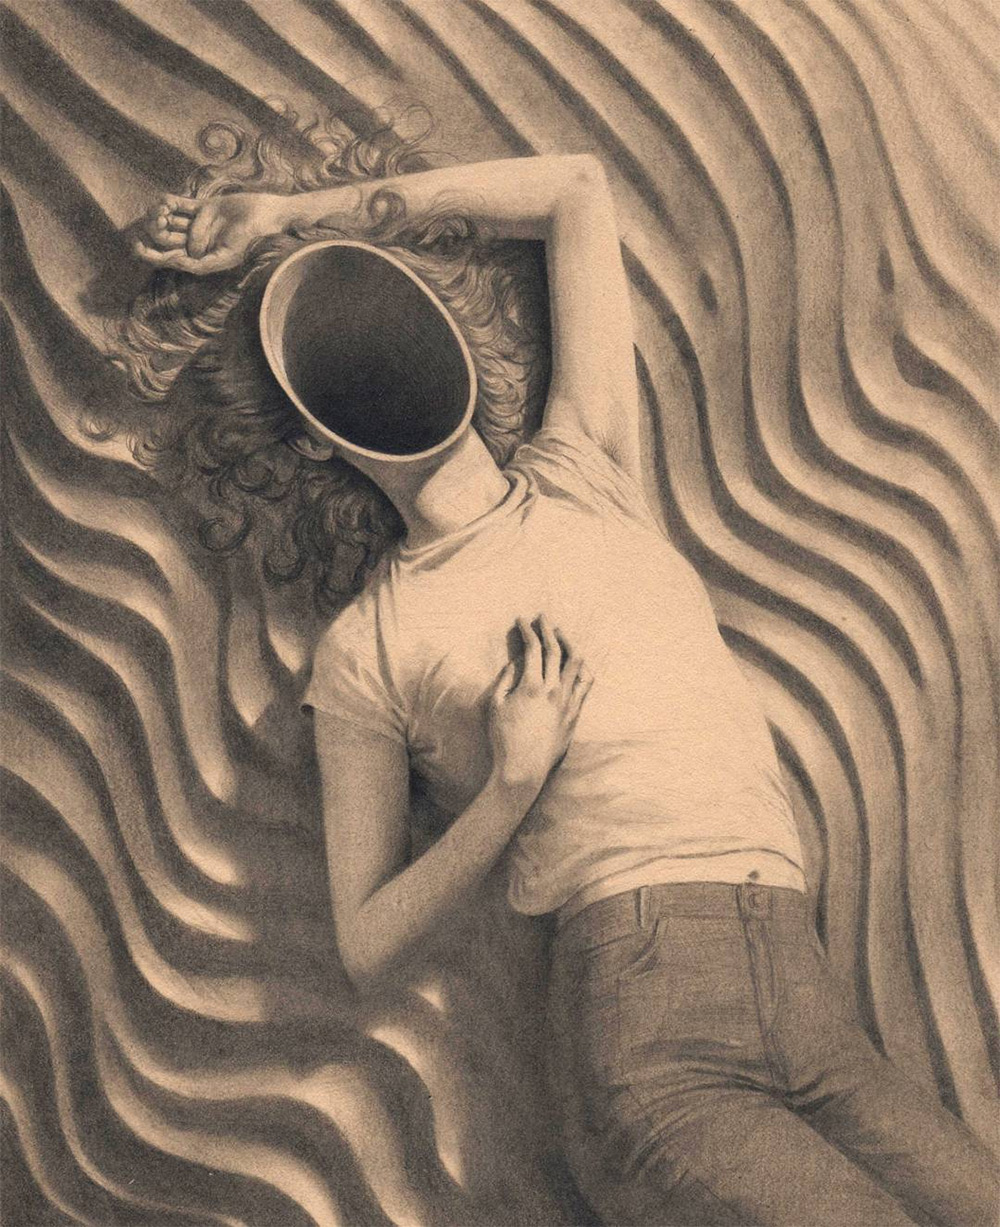 Segmented and Compartmentalized Graphite Portraits by Miles Johnston